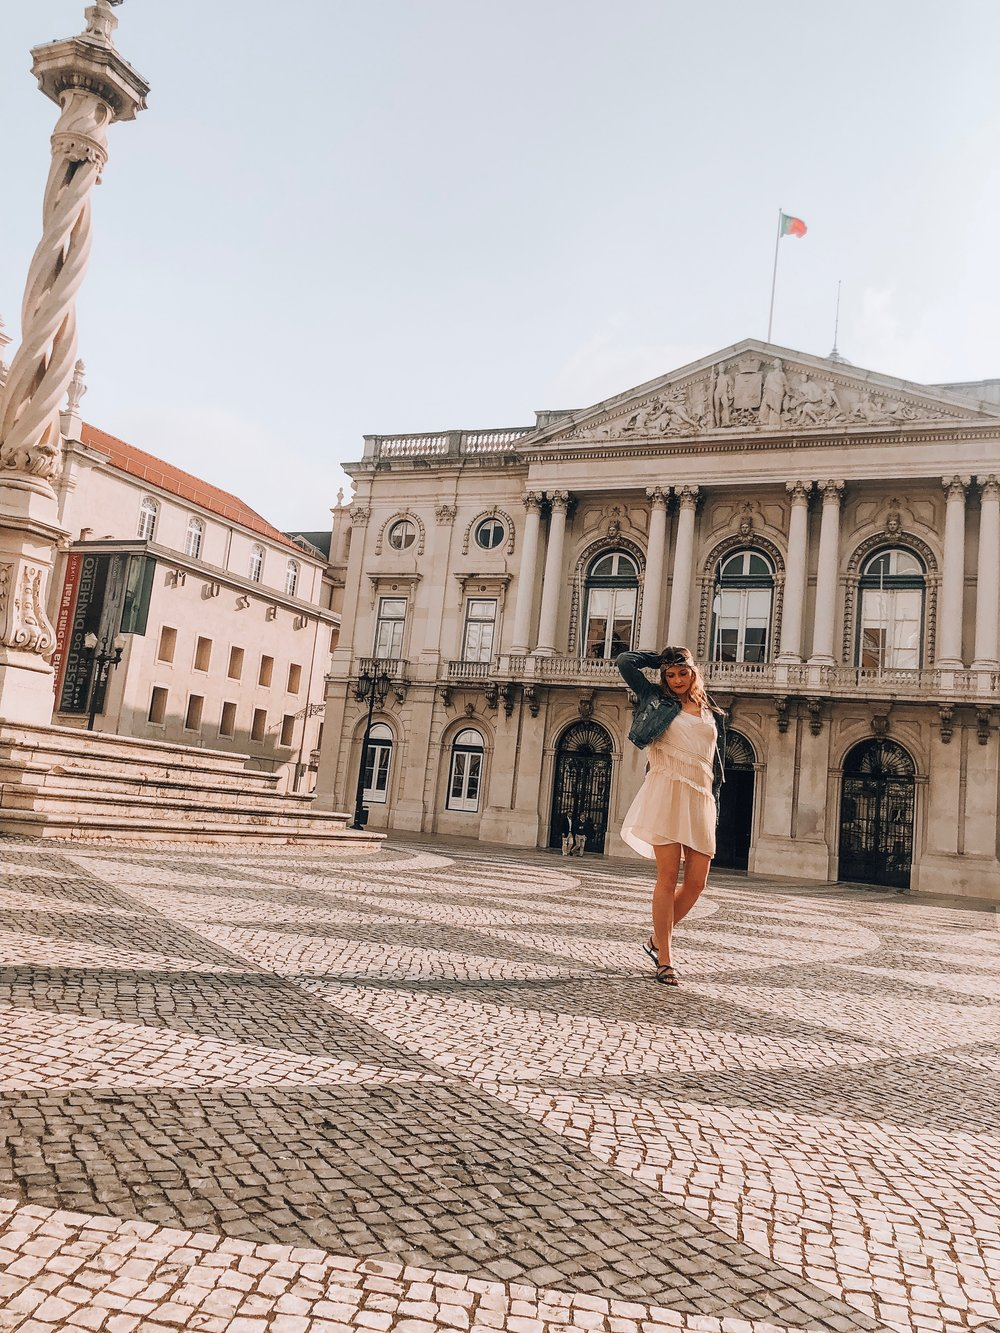 Praça do Municipio, Lisbon, August 2018